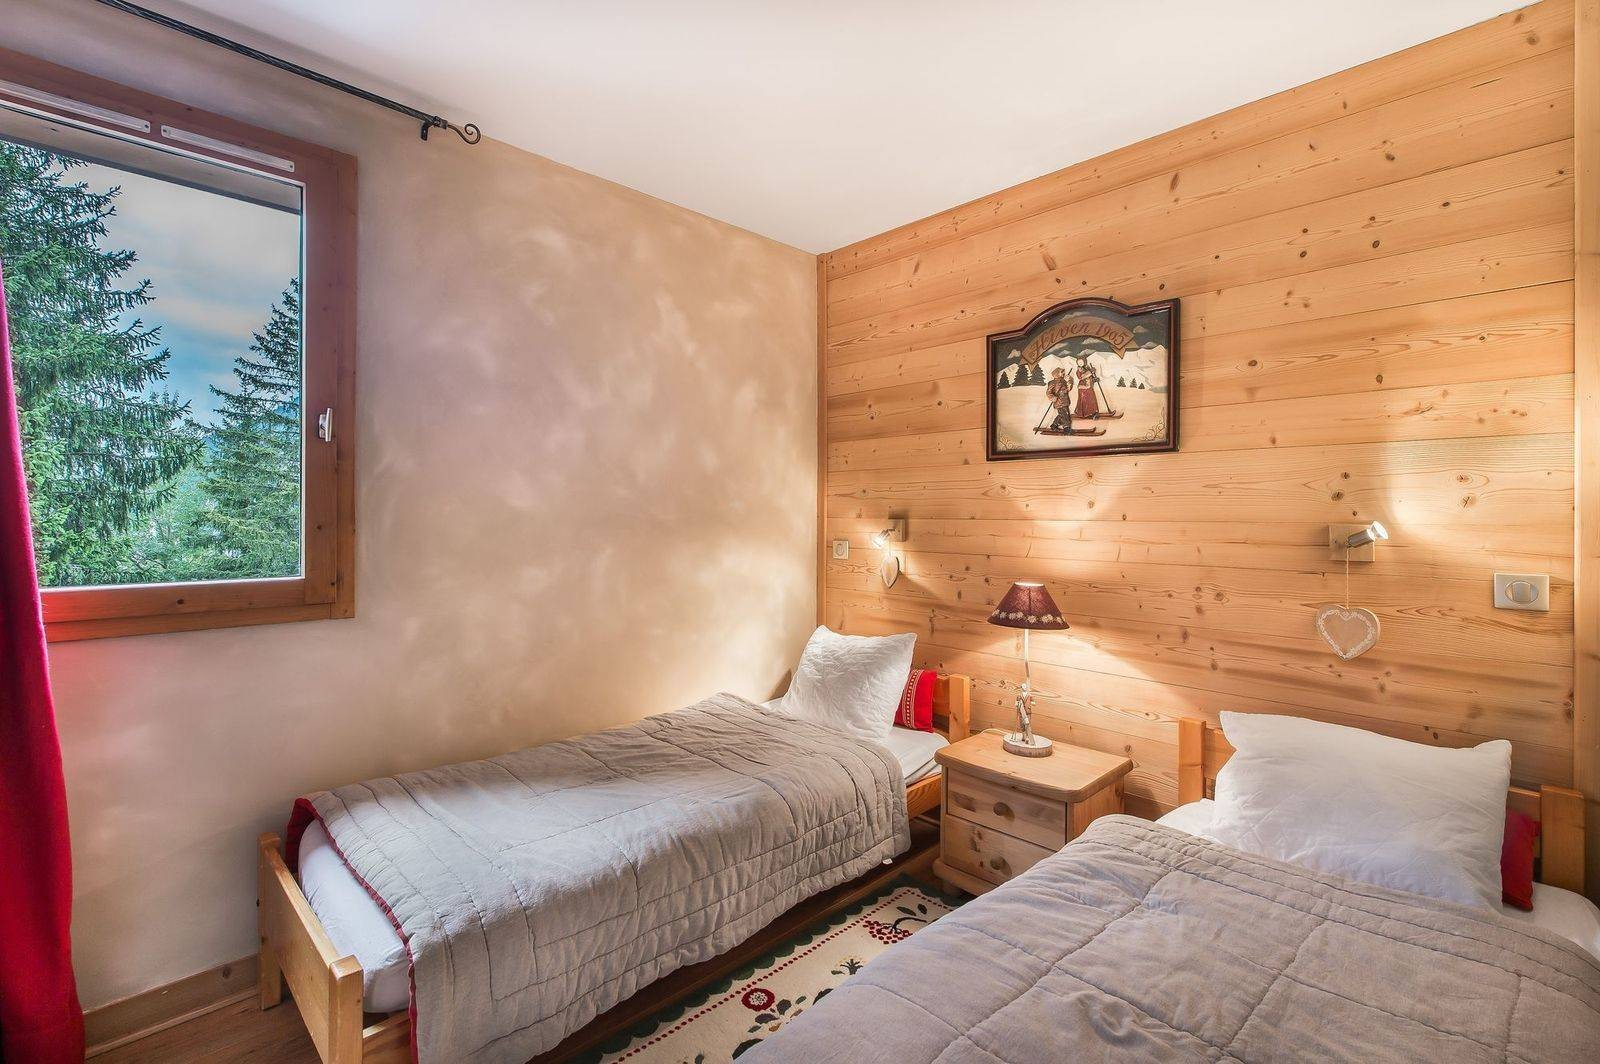 Courchevel 1650 Location Appartement Luxe Temadere Chambre 3